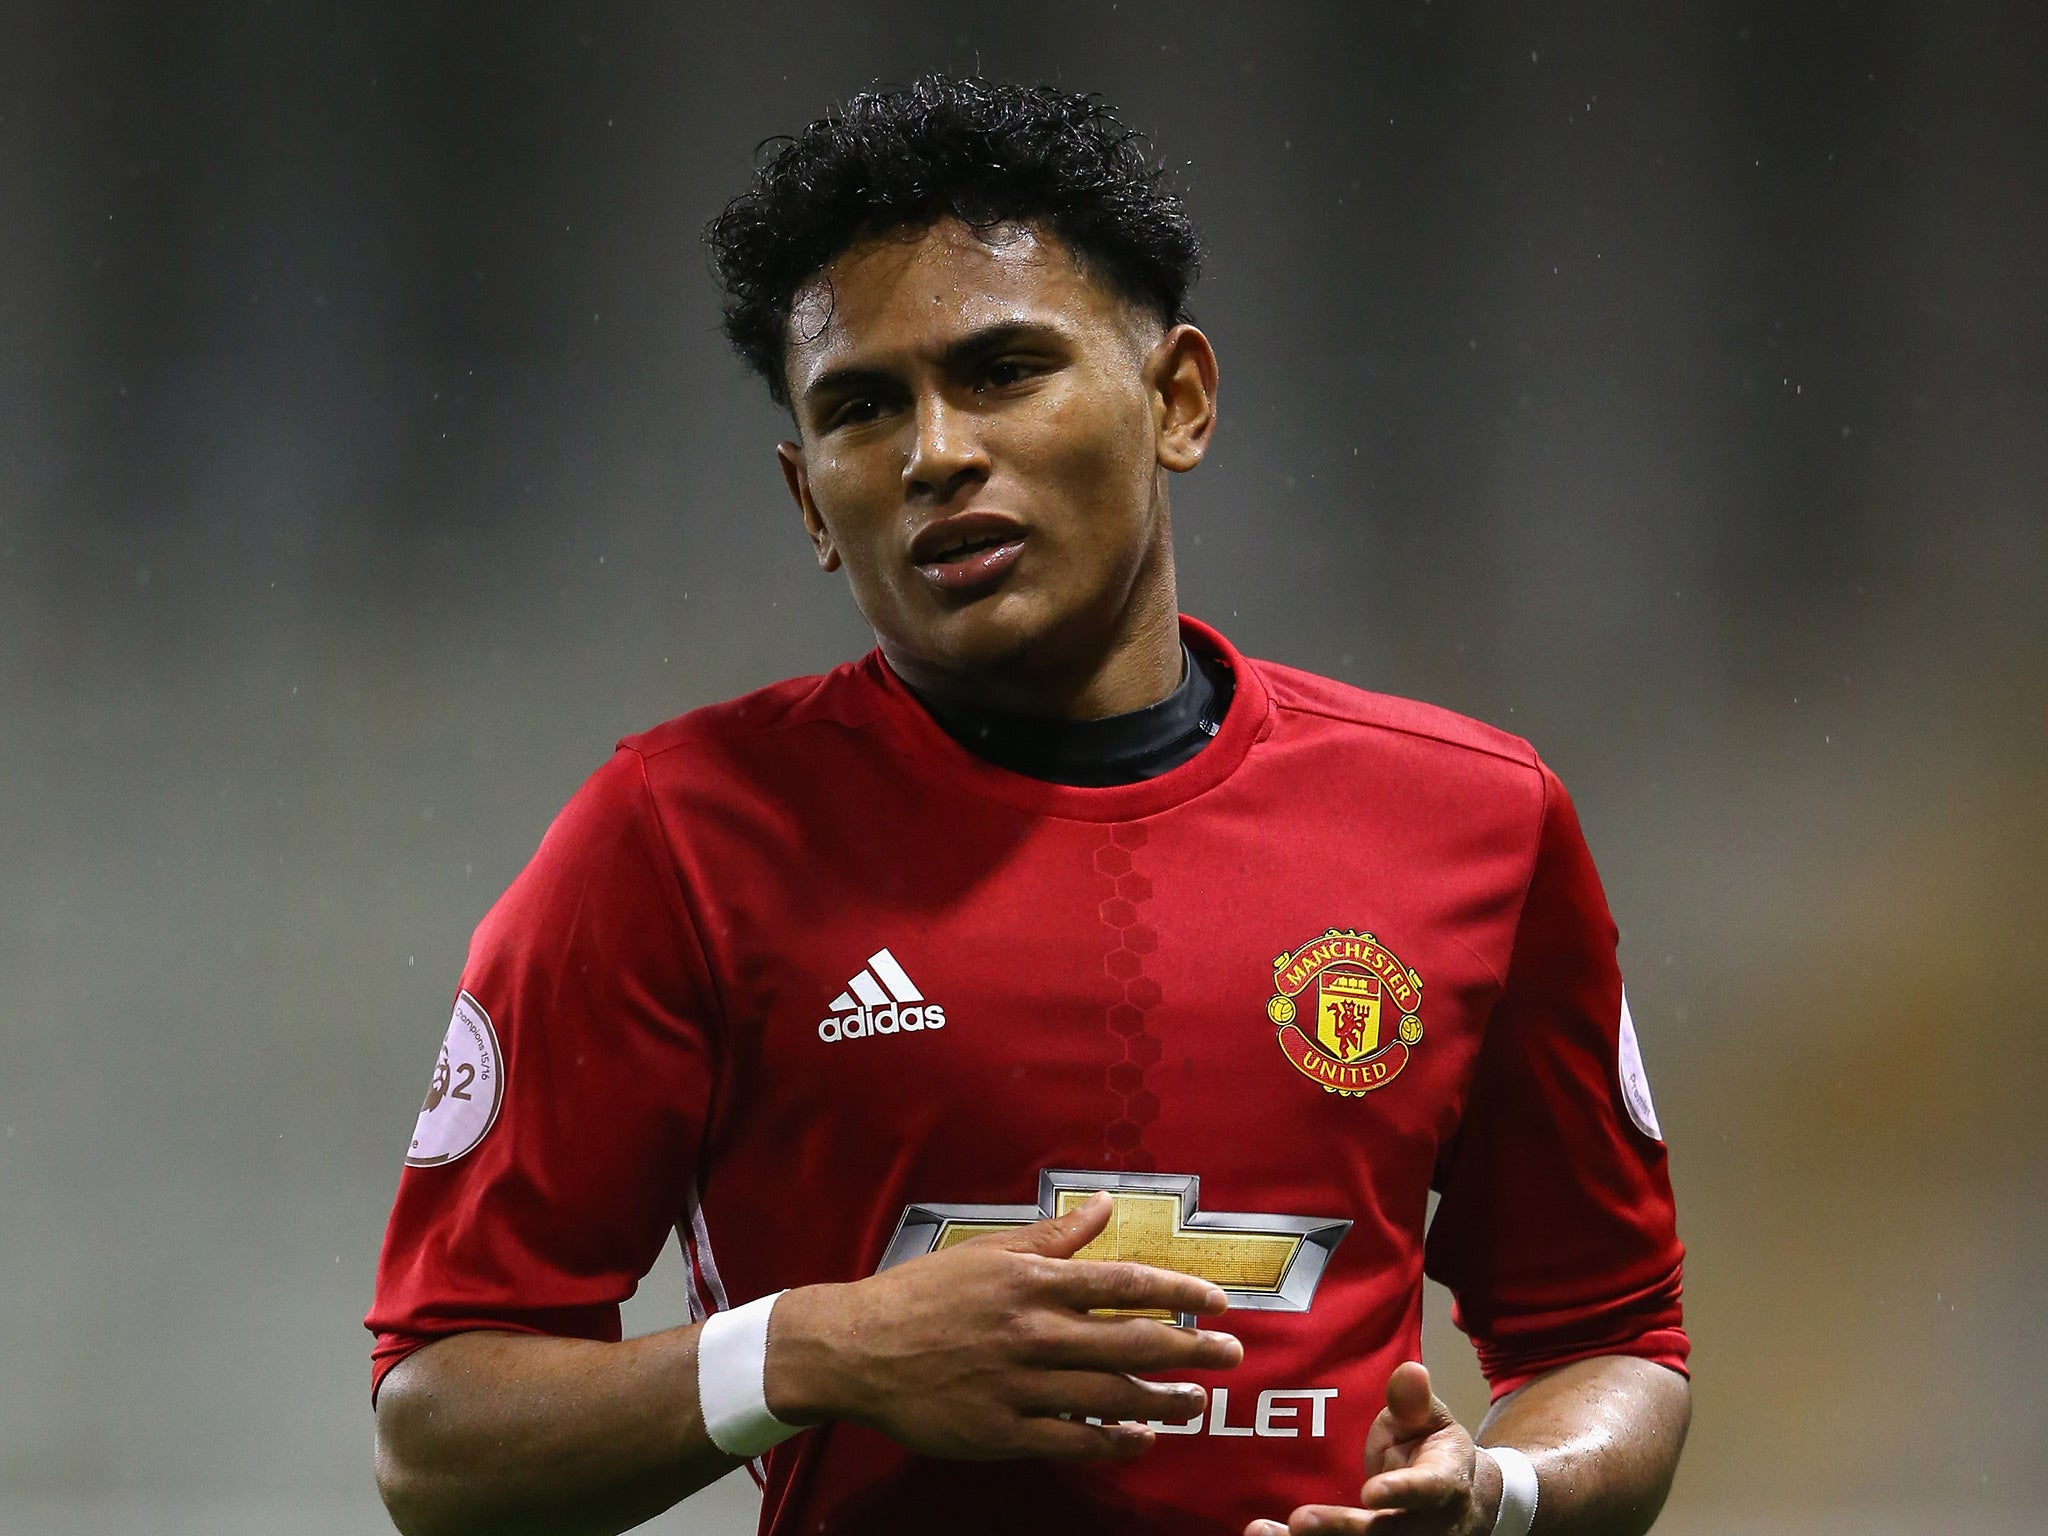 Demetri Mitchell | Man Utd Reserves Player Profile | U23